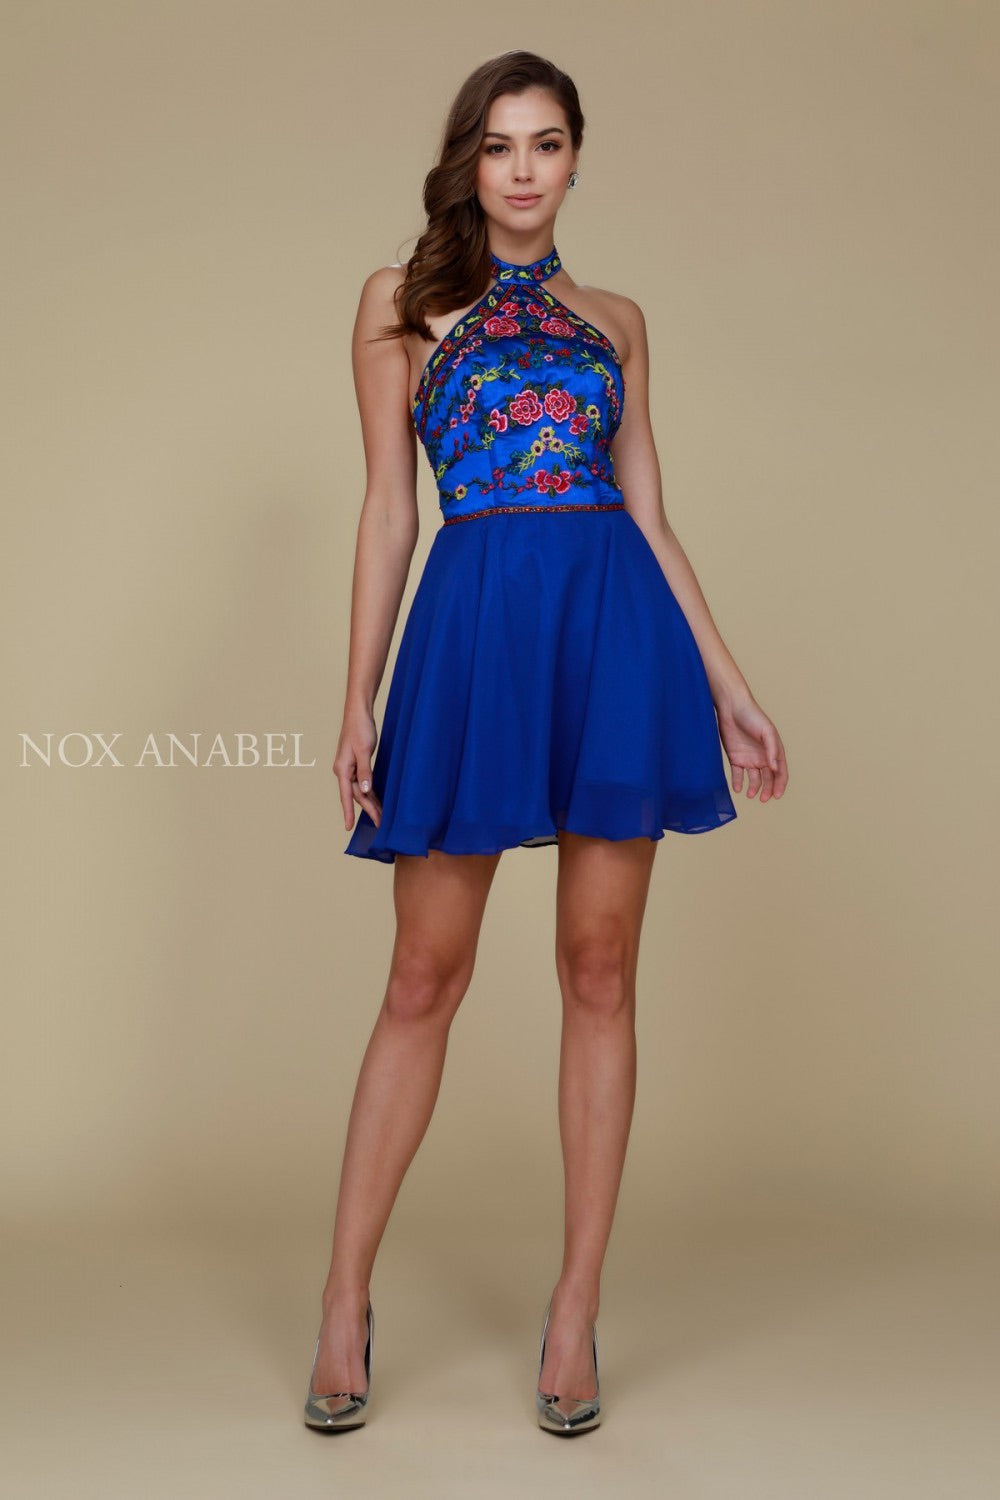 Nox Anabel 6235 Party Dress